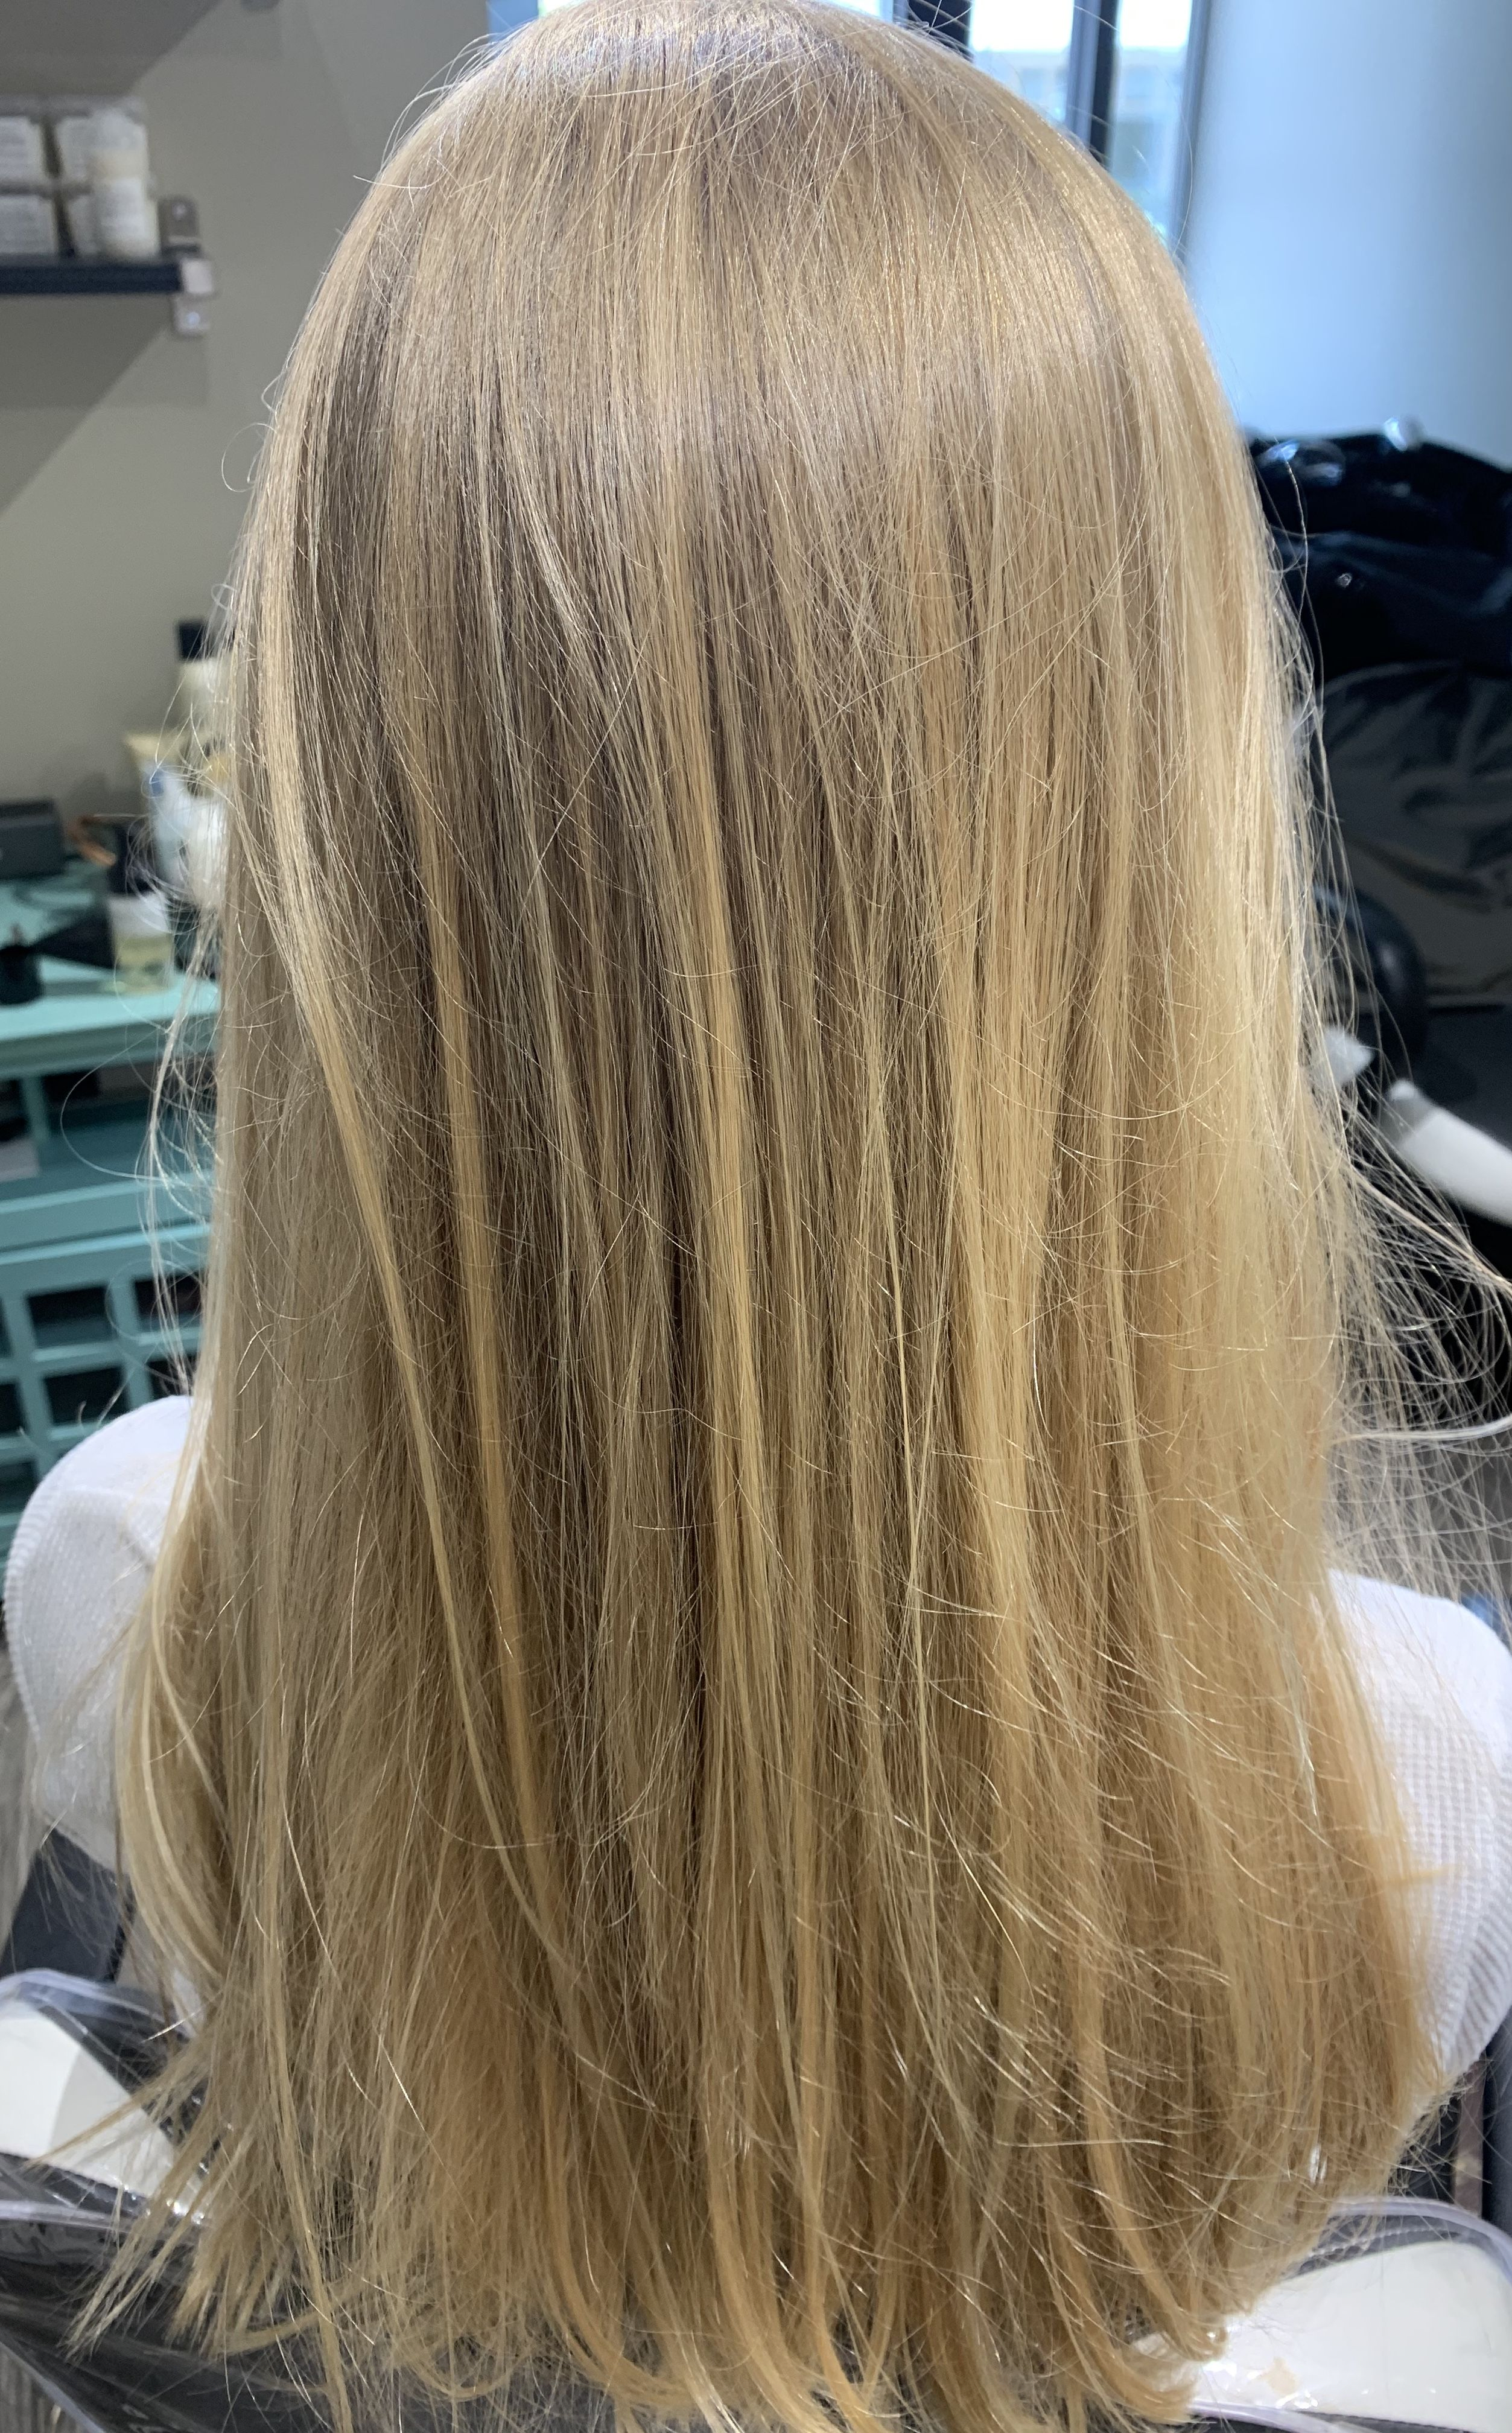 Pin By Evelyn Neary On Marissa S Hair Studio In 2020 Long Hair Styles Hair Studio Hair Styles